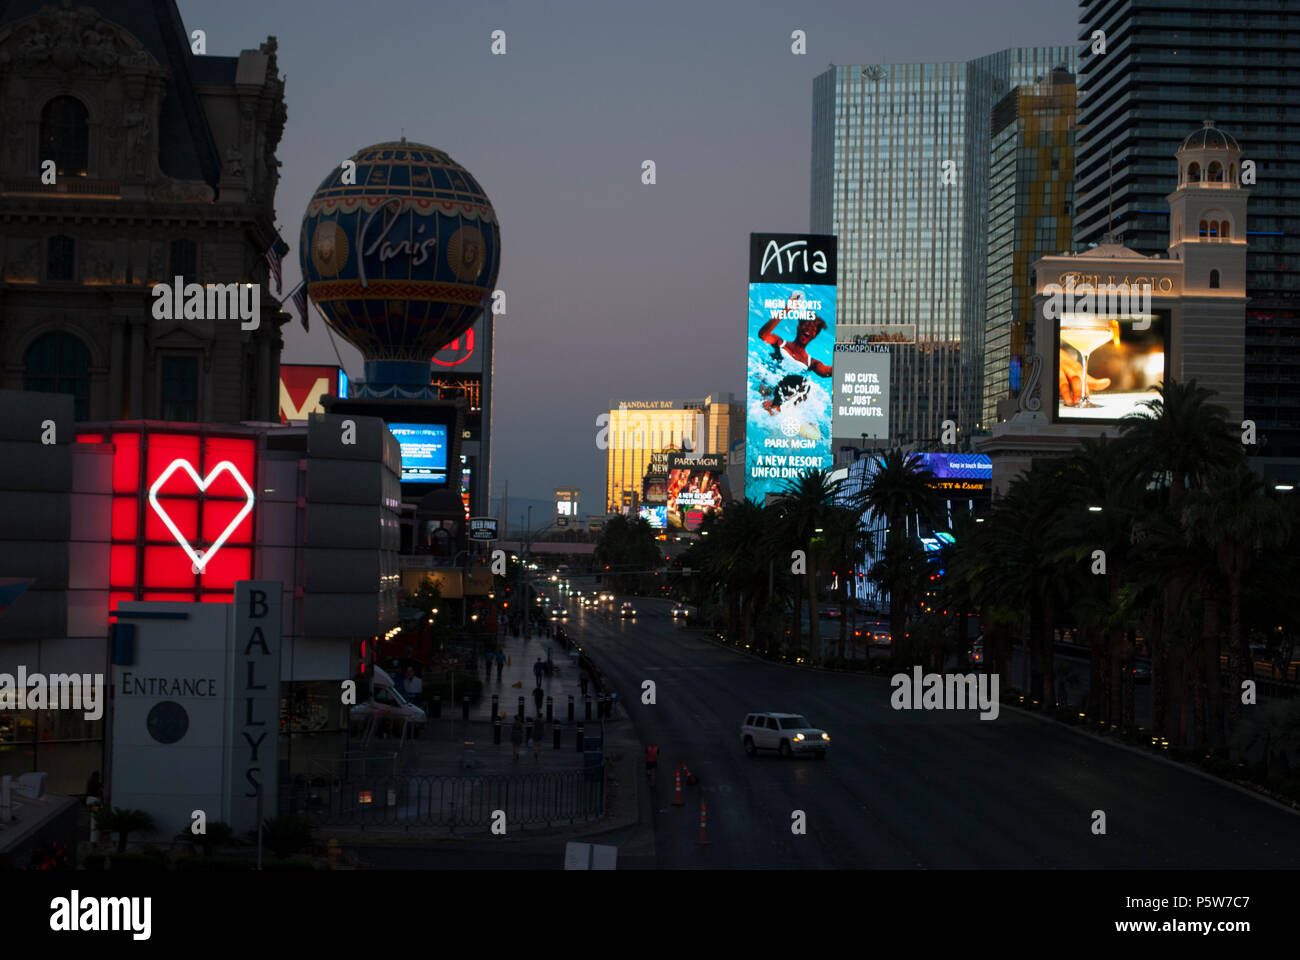 Famous city. Modern urban style. Advertising billboards, neon lights. Las Vegas Strip at night. Early morning at the Strip - Stock Image